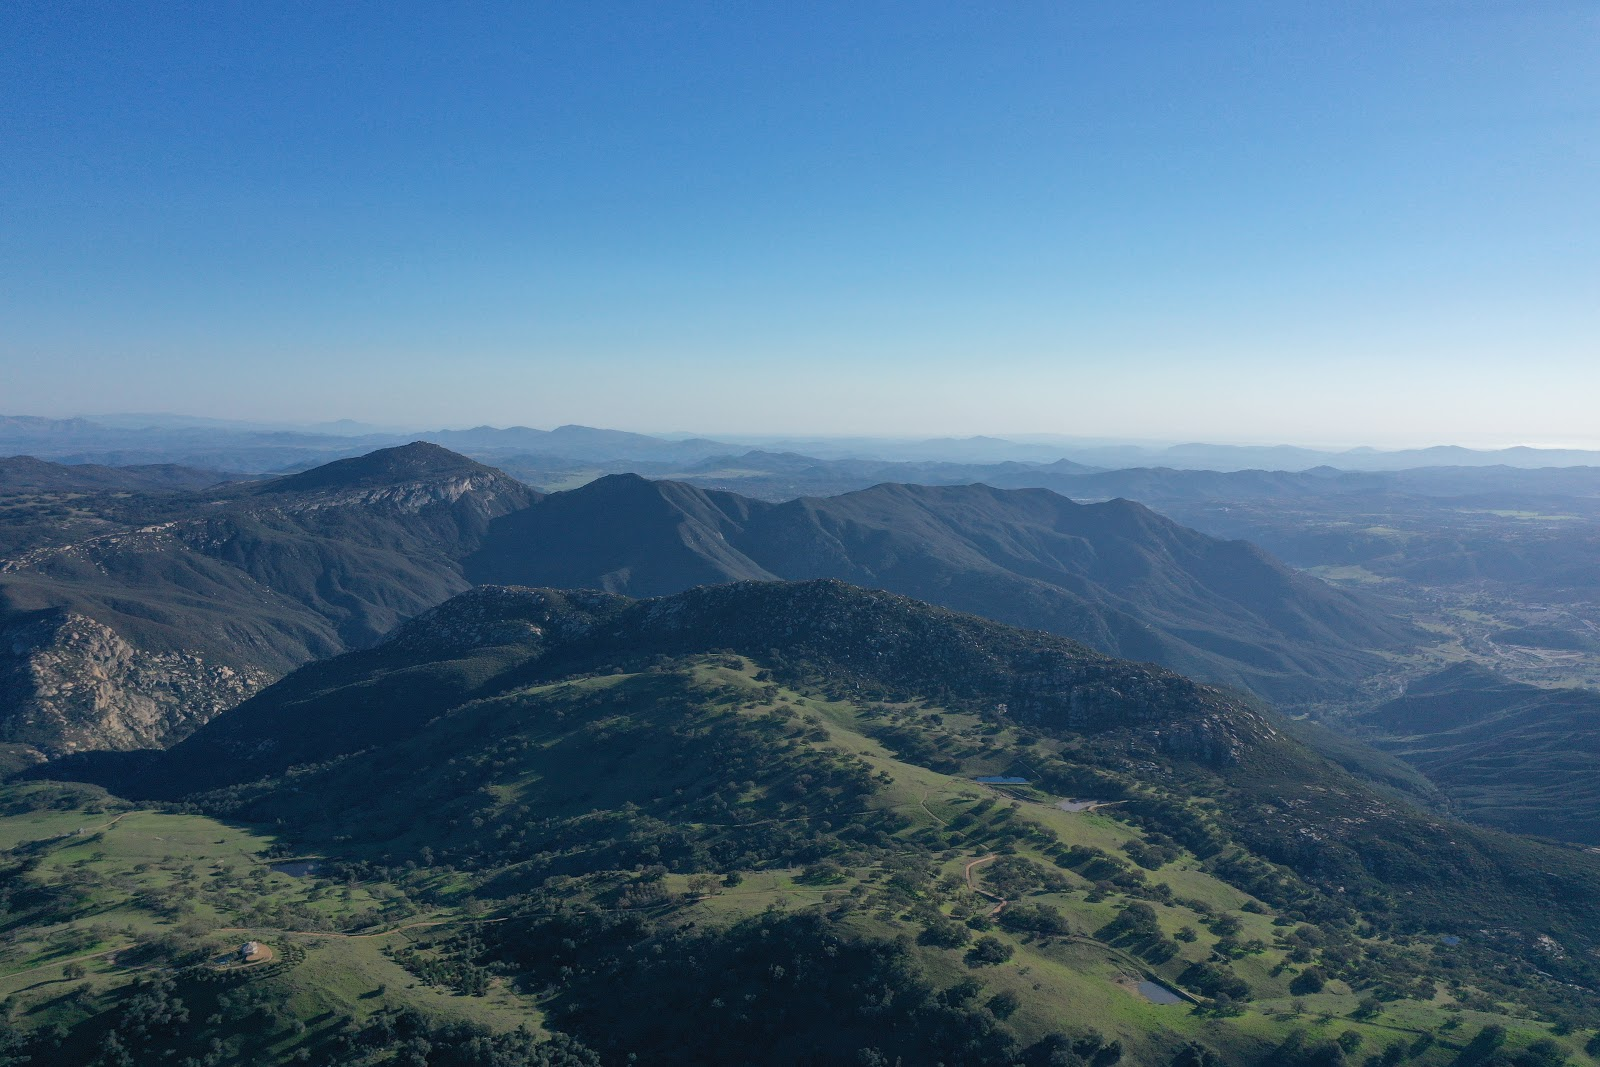 Drone view from the top of Mt Palomar